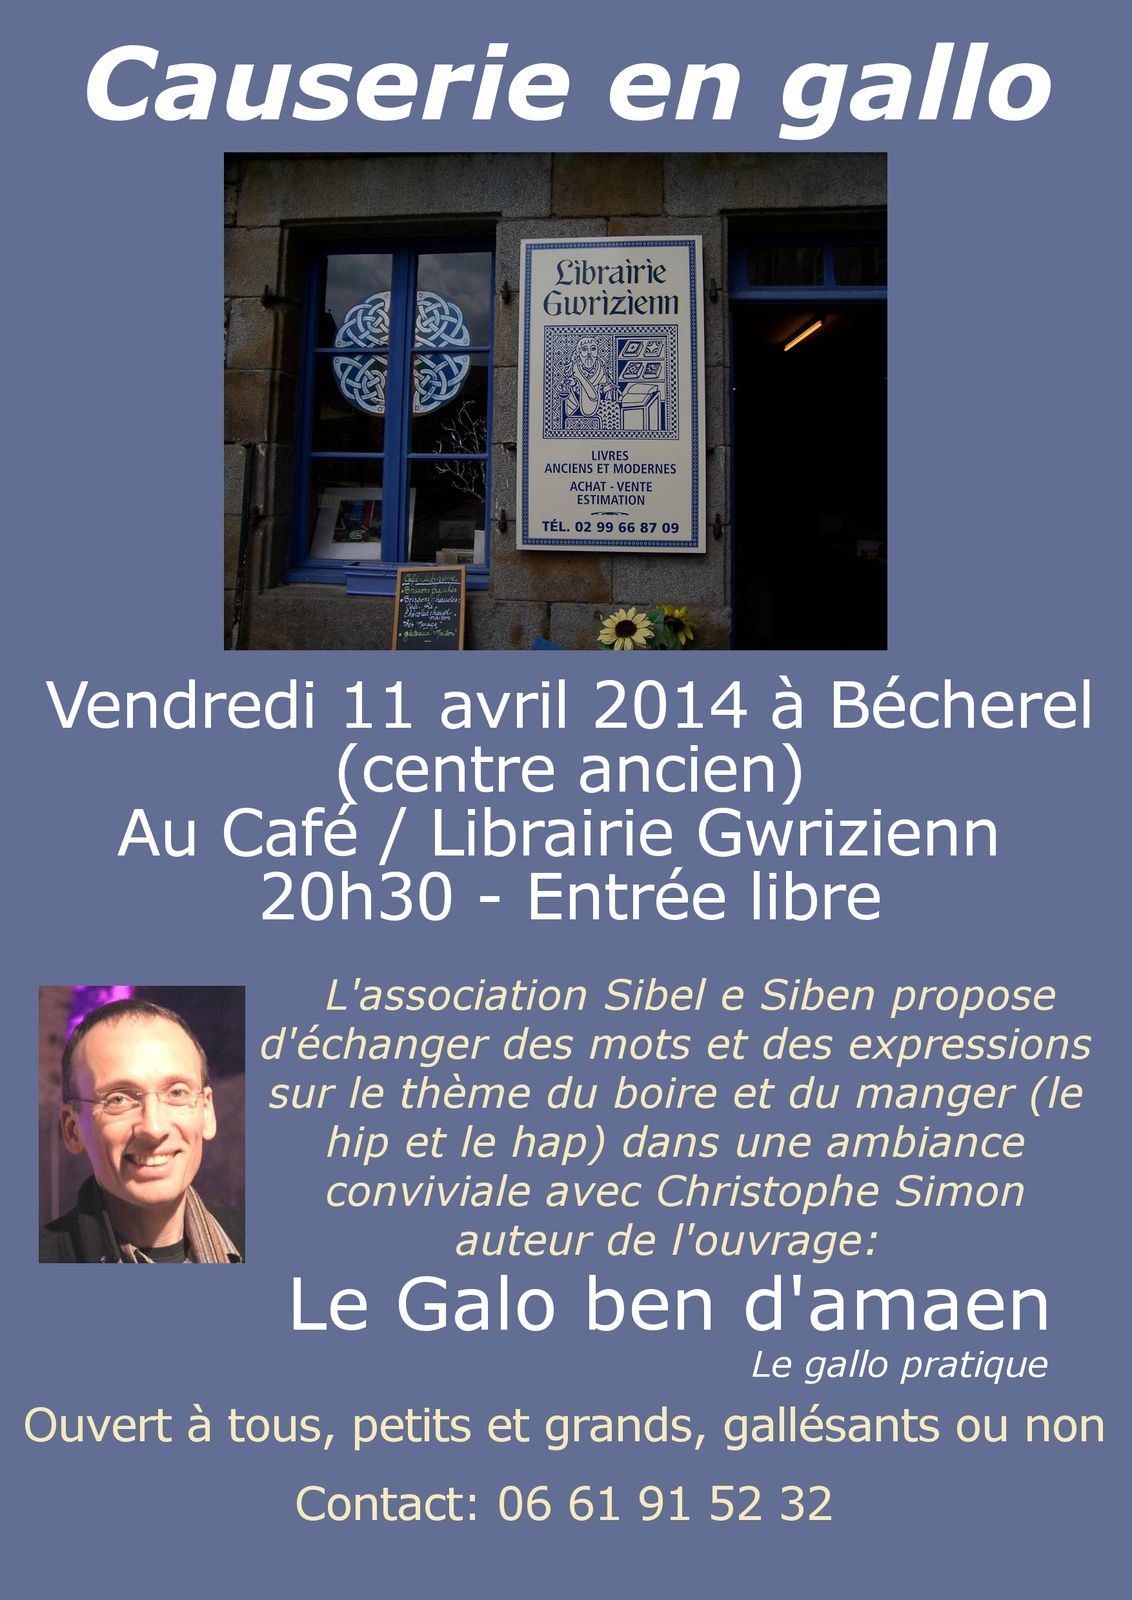 Causerie en gallo vendredi 14 avril 2014